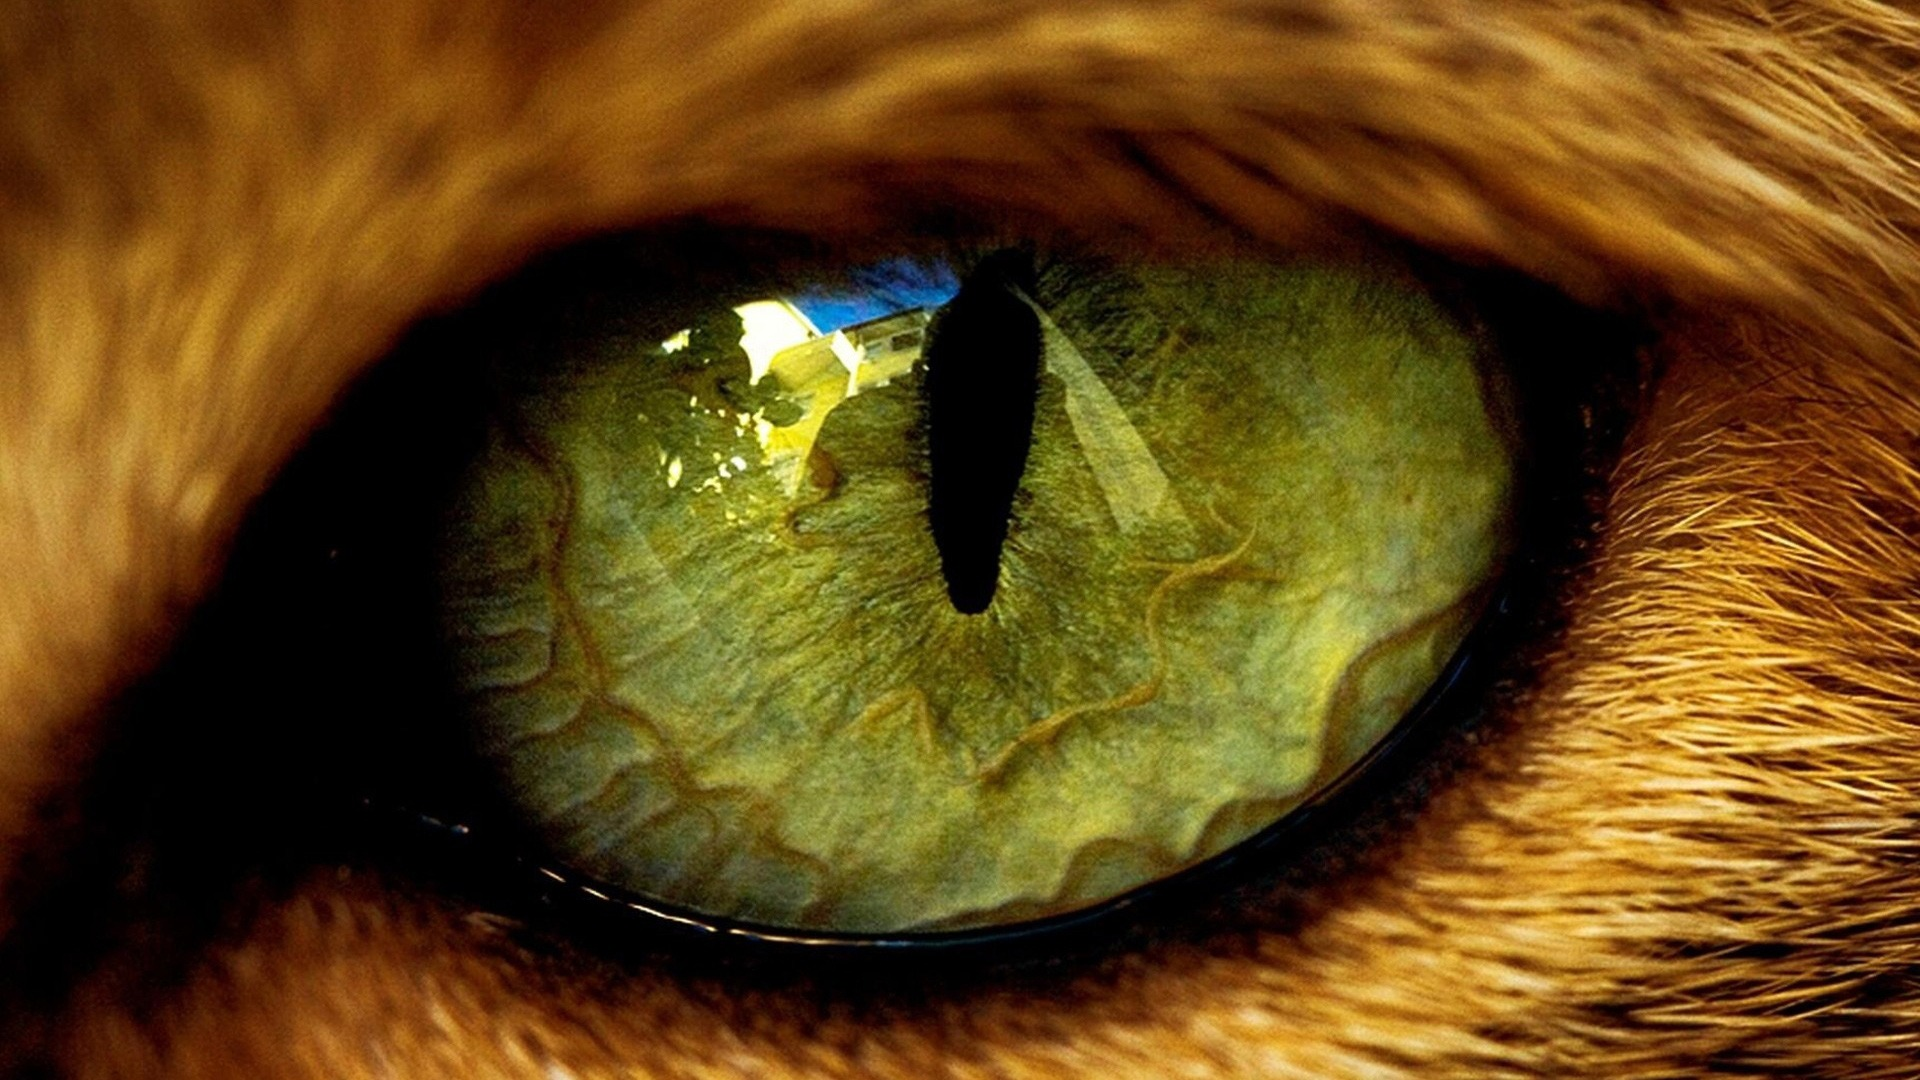 Download high quality 1920 x 1080 Green animal eye Wallpaper.